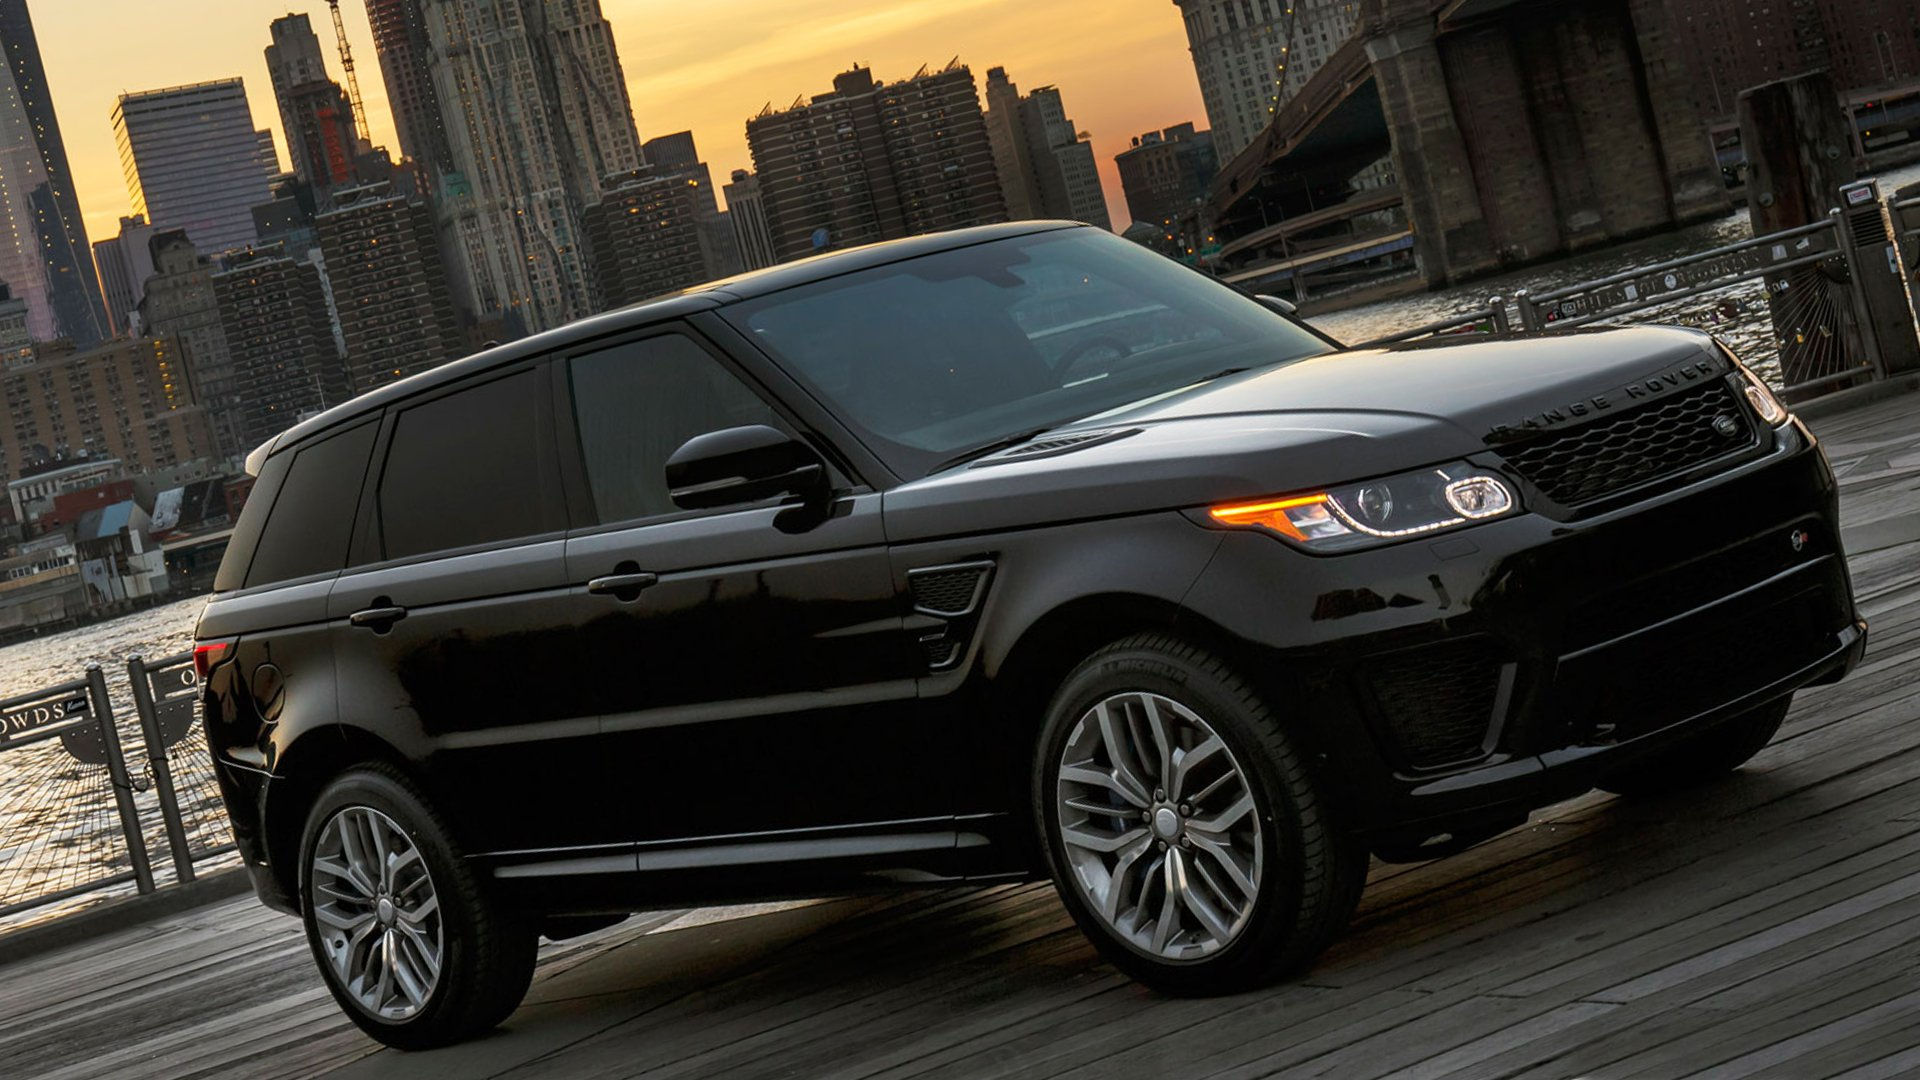 New 2019 Range Rover Sport Exterior Changes